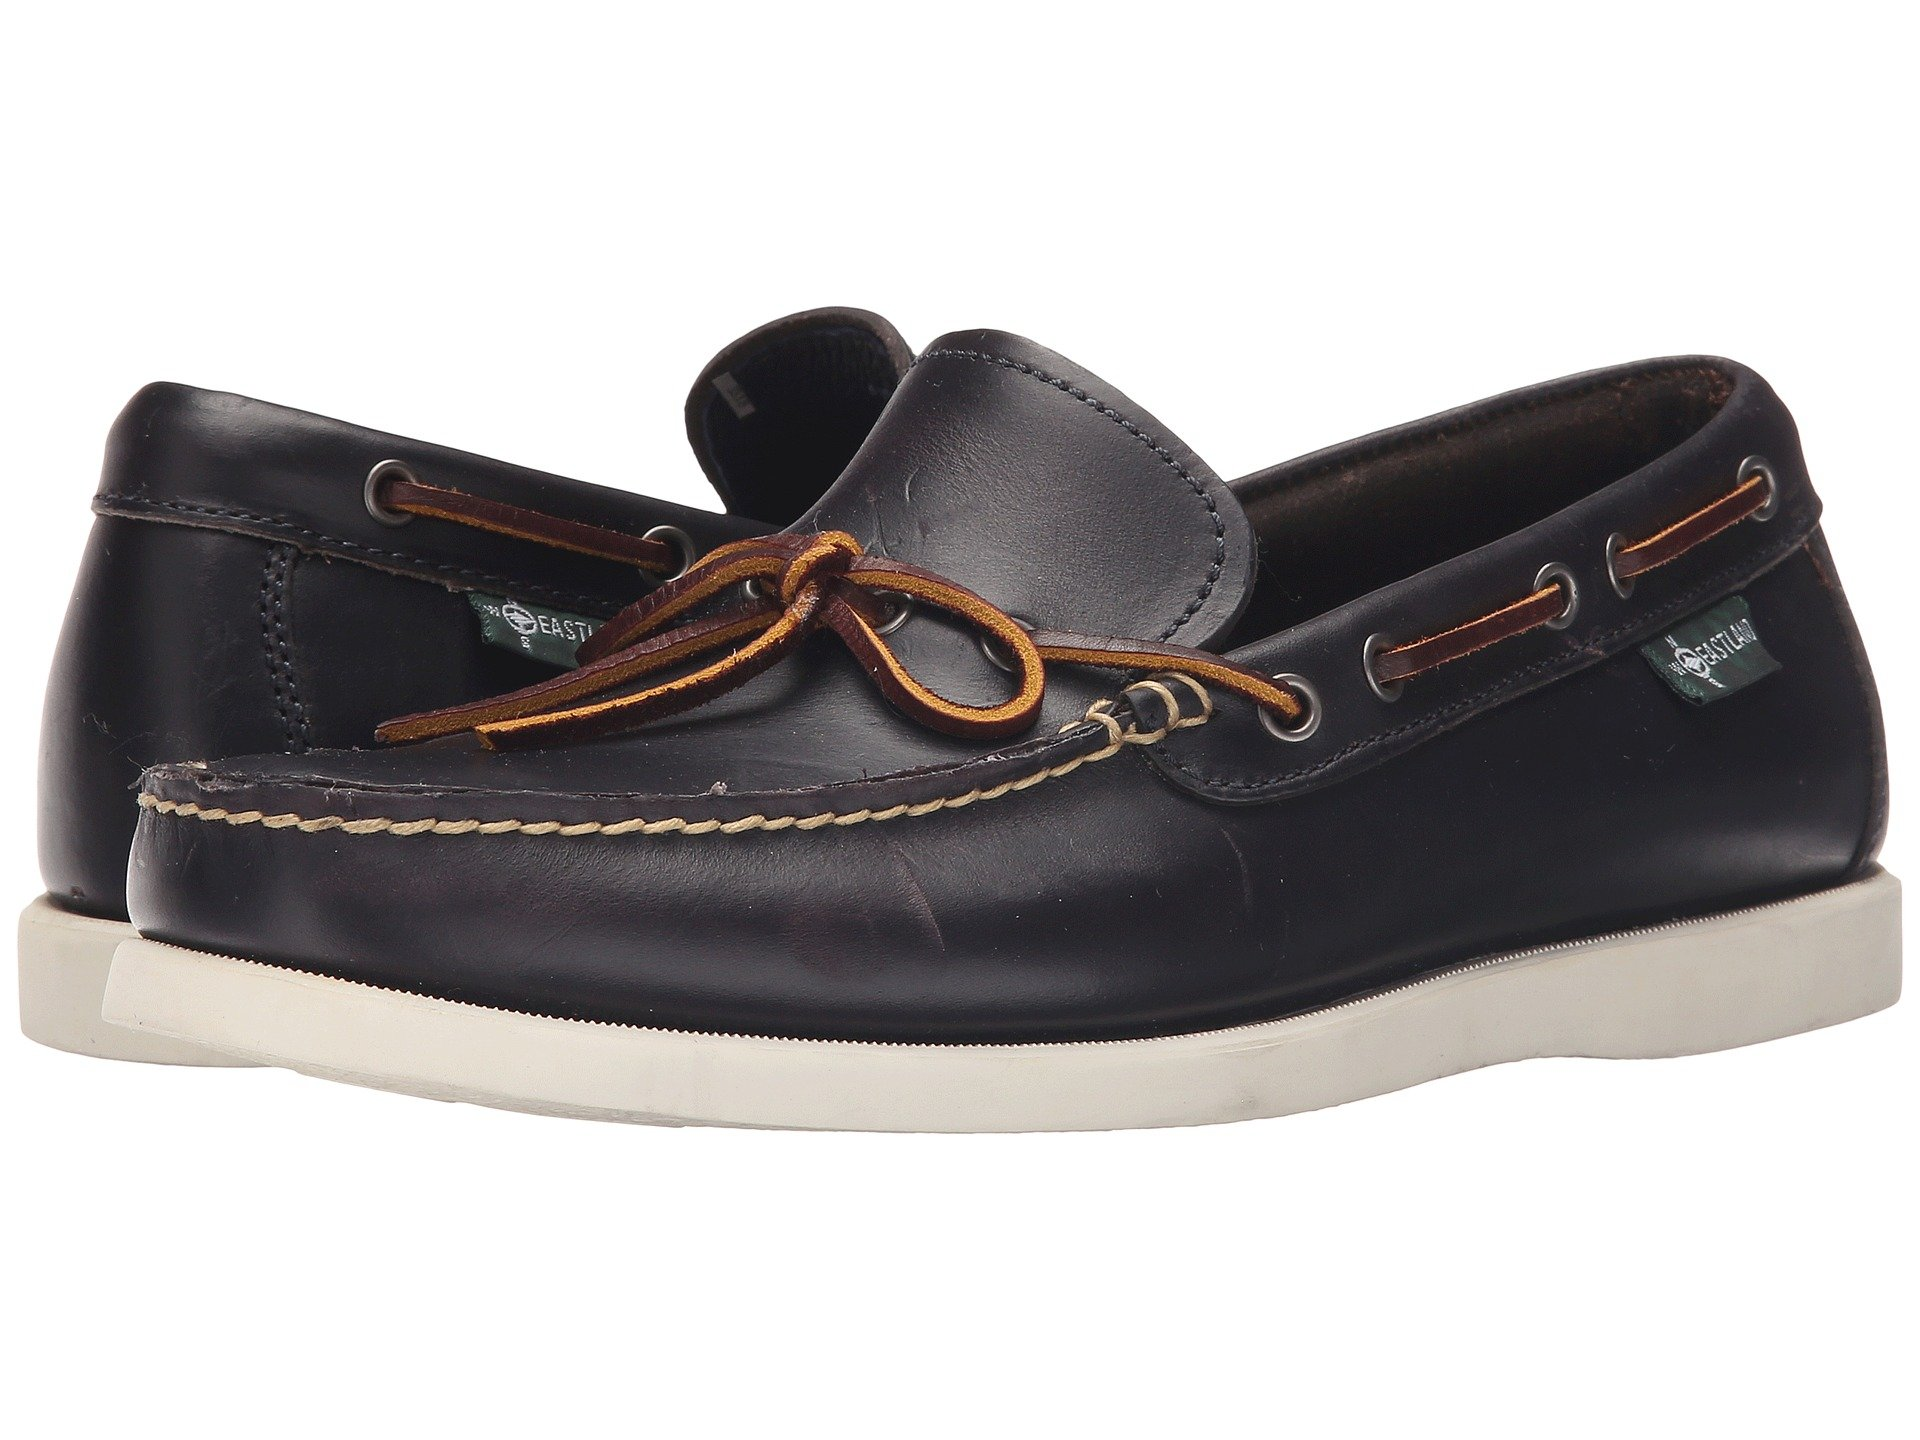 Calzado Tipo Boat Shoe para Hombre Eastland Yarmouth 1955 Edition Collection  + Eastland en VeoyCompro.net